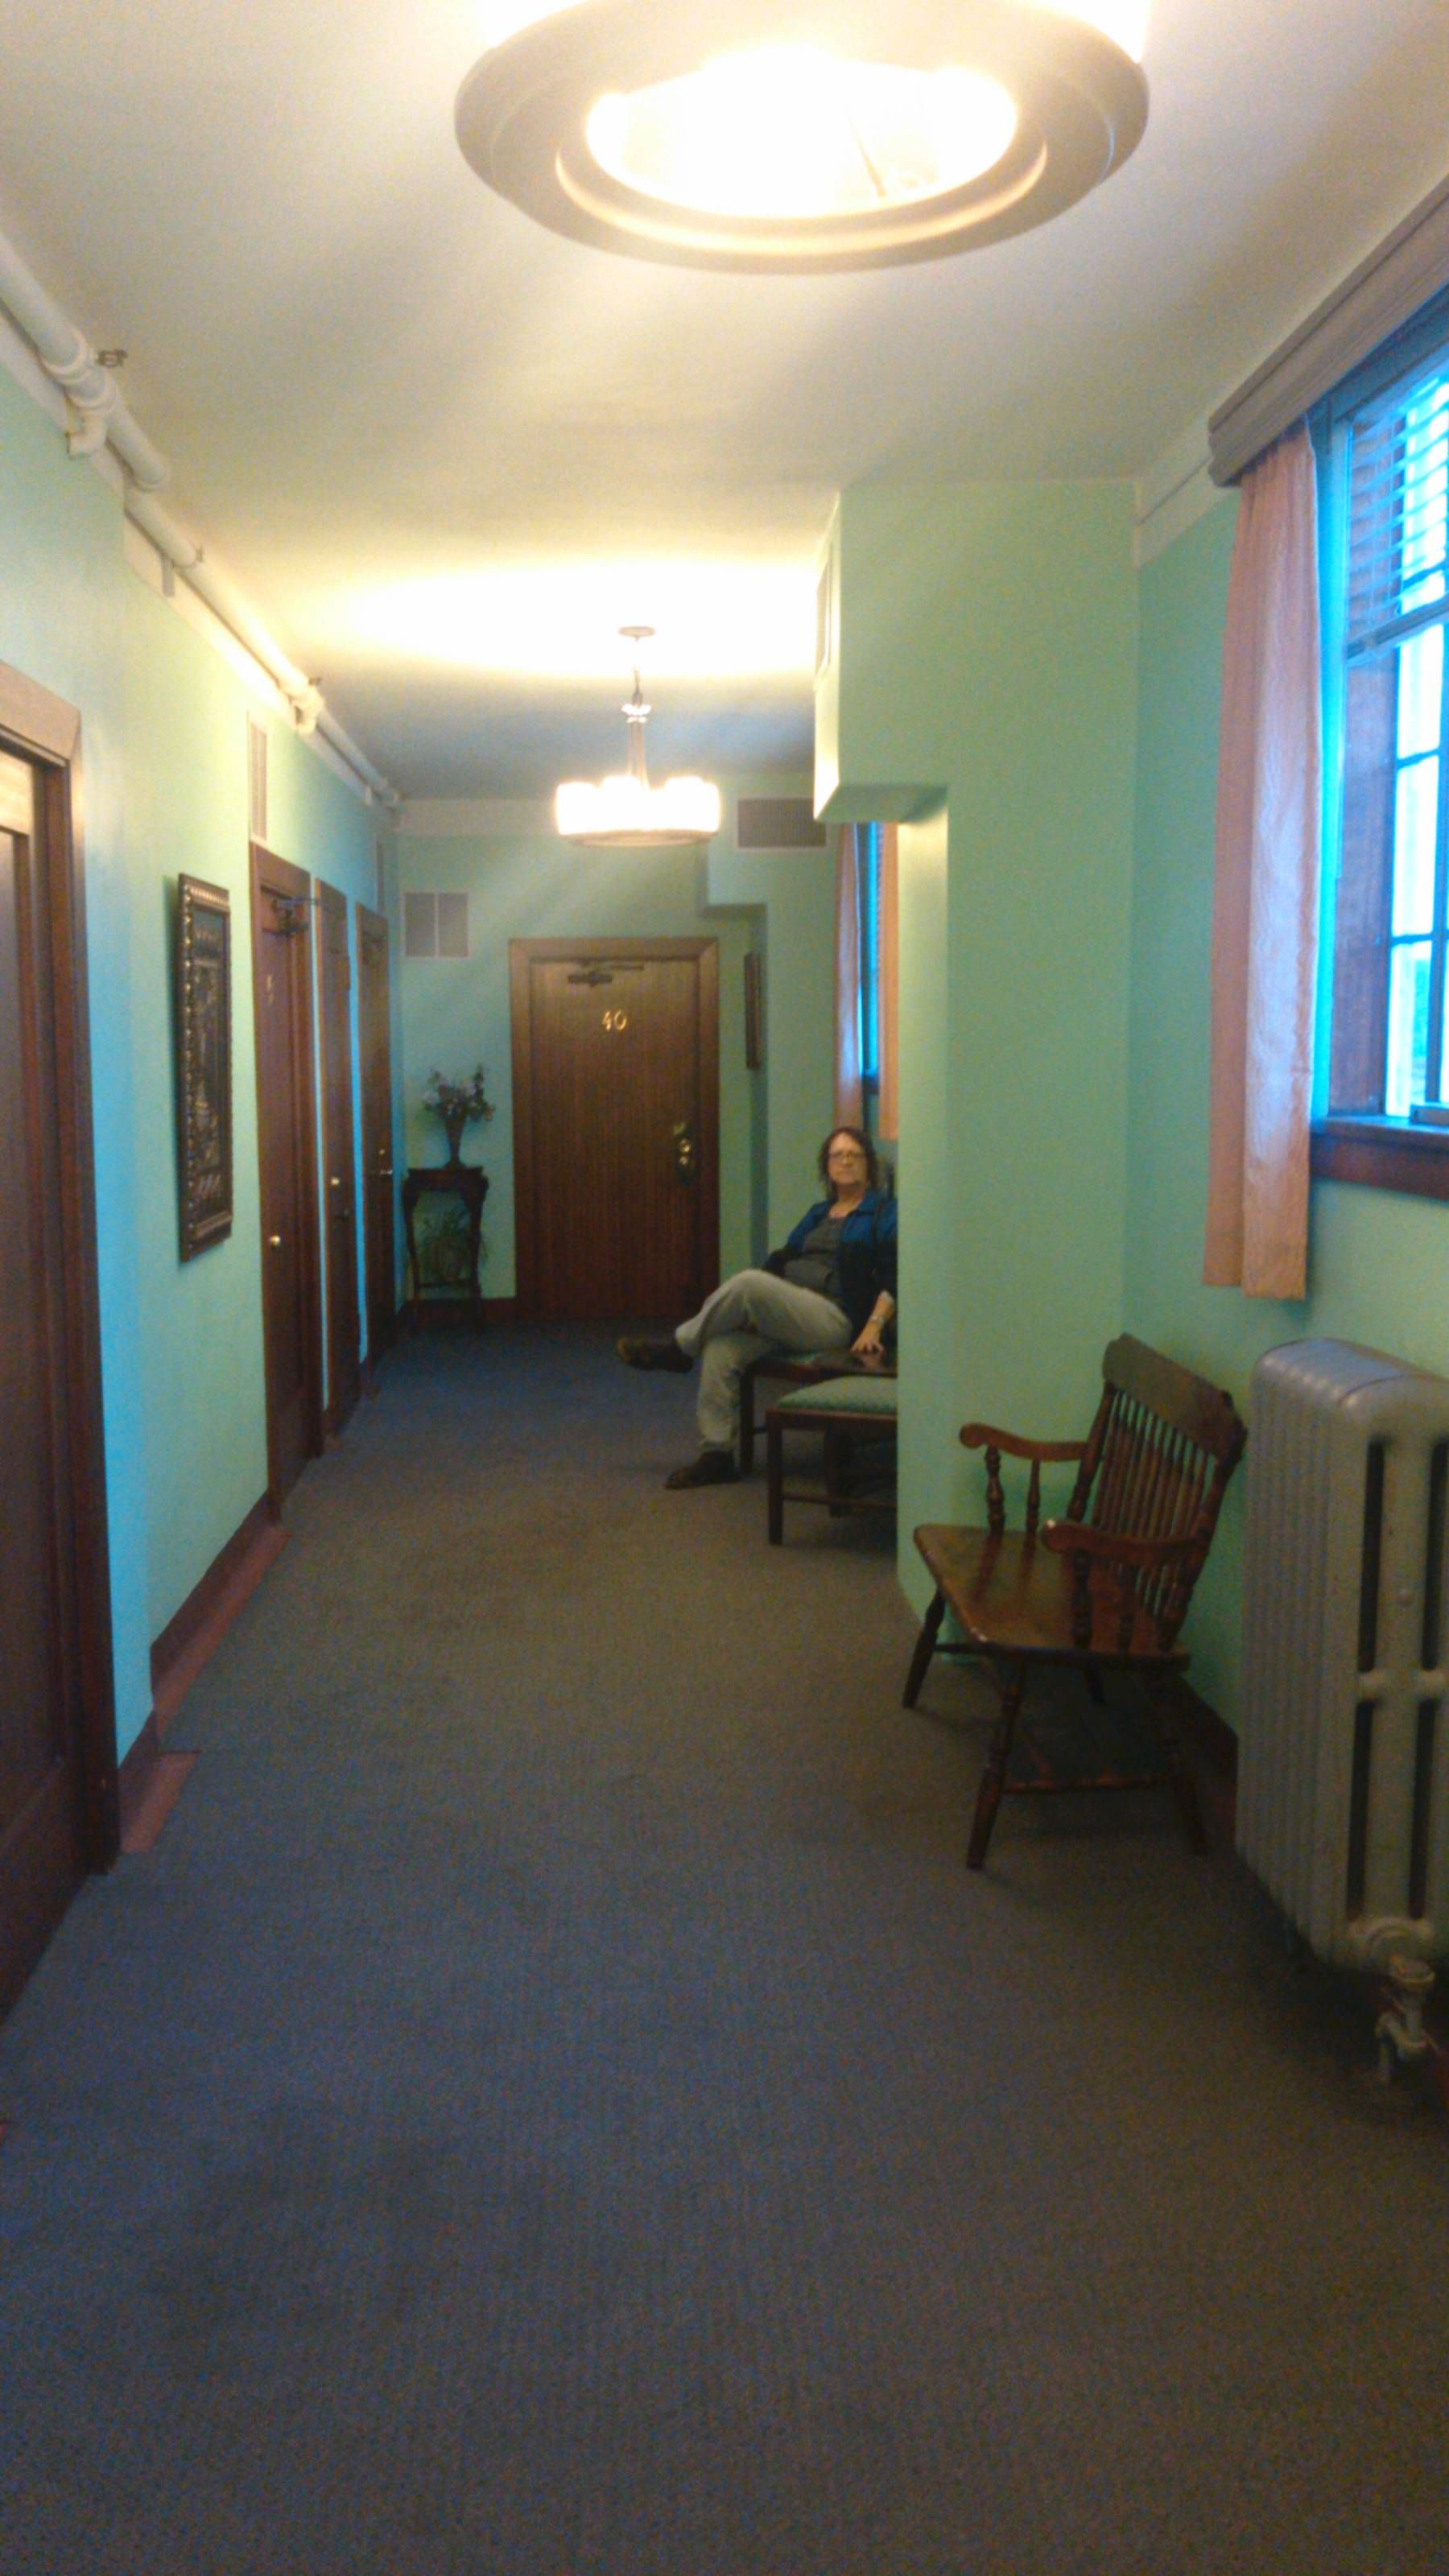 Wife Sitting In Halway At Jerome Grand Hotel At The End Room 40